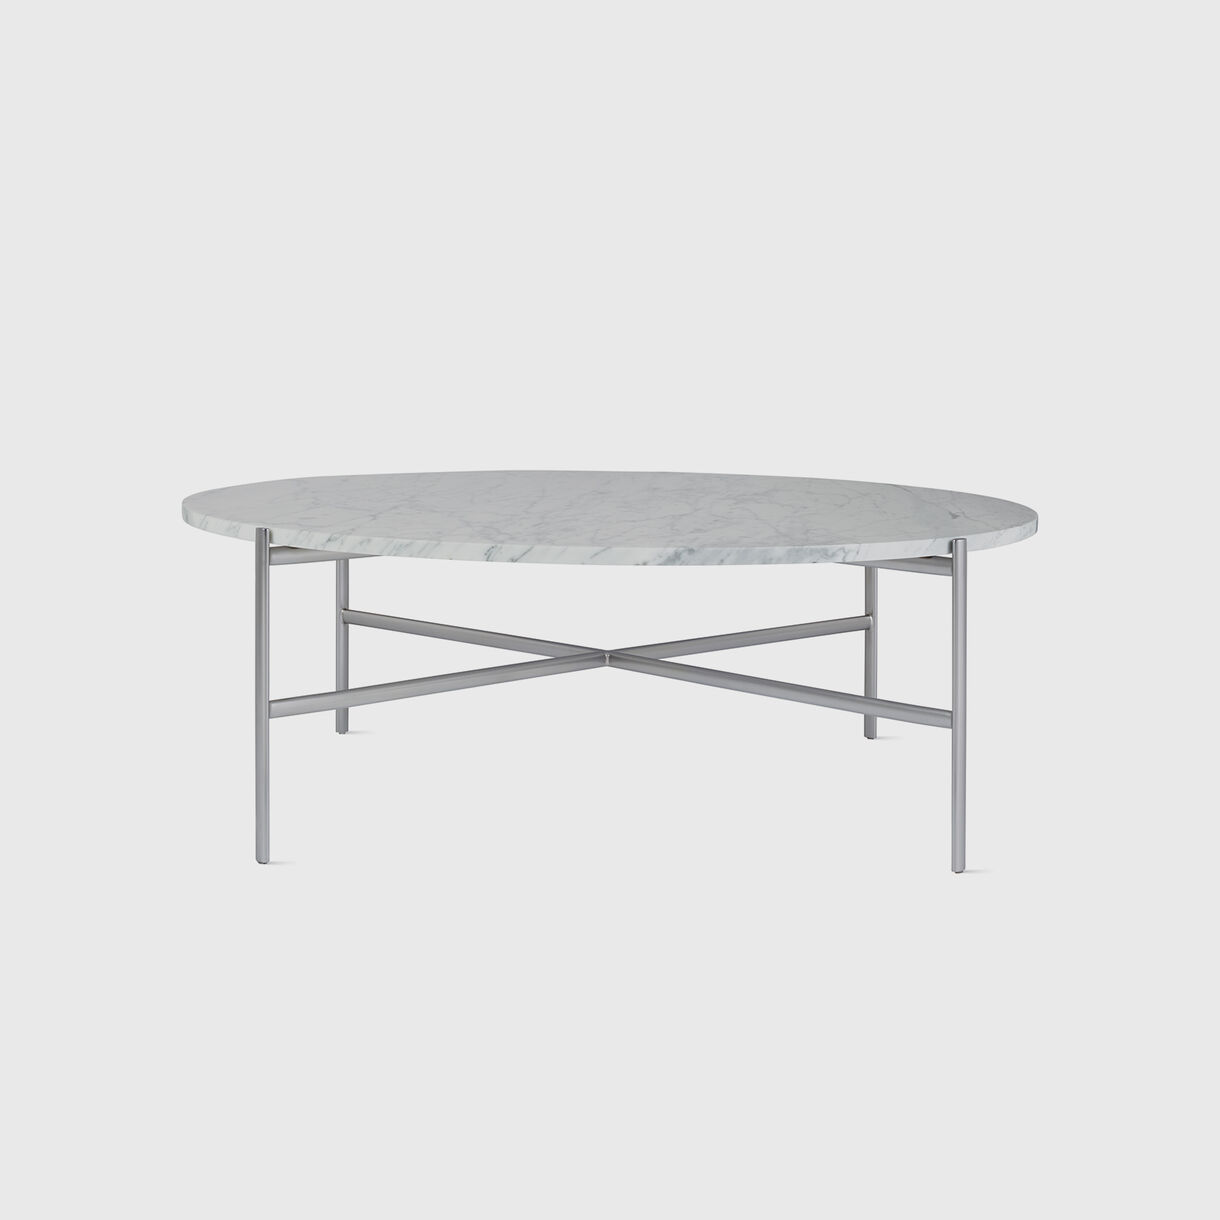 Sylvain Outline Round Coffee Table, Carrara Marble & Stainless Steel